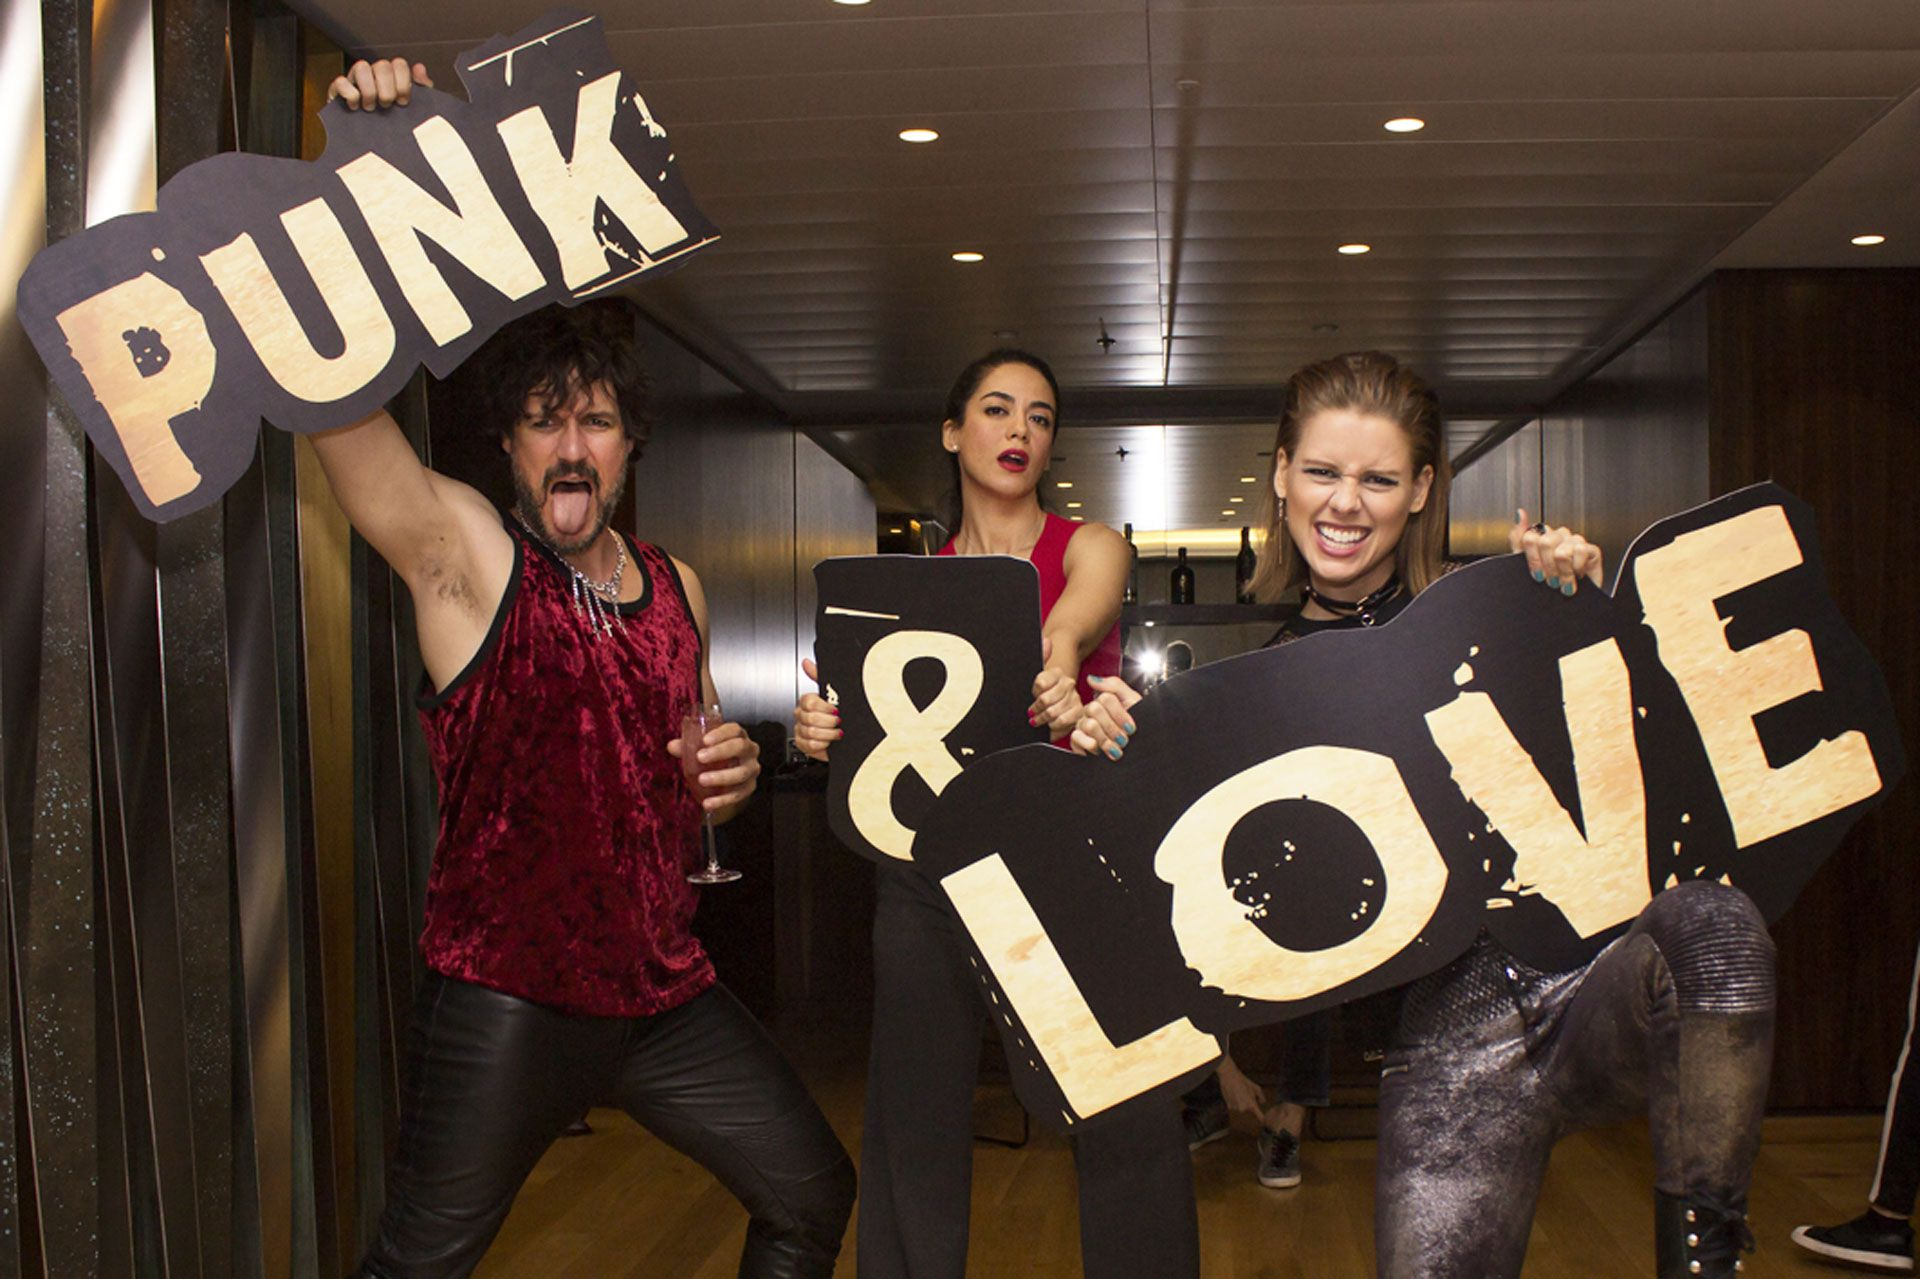 Punk and love